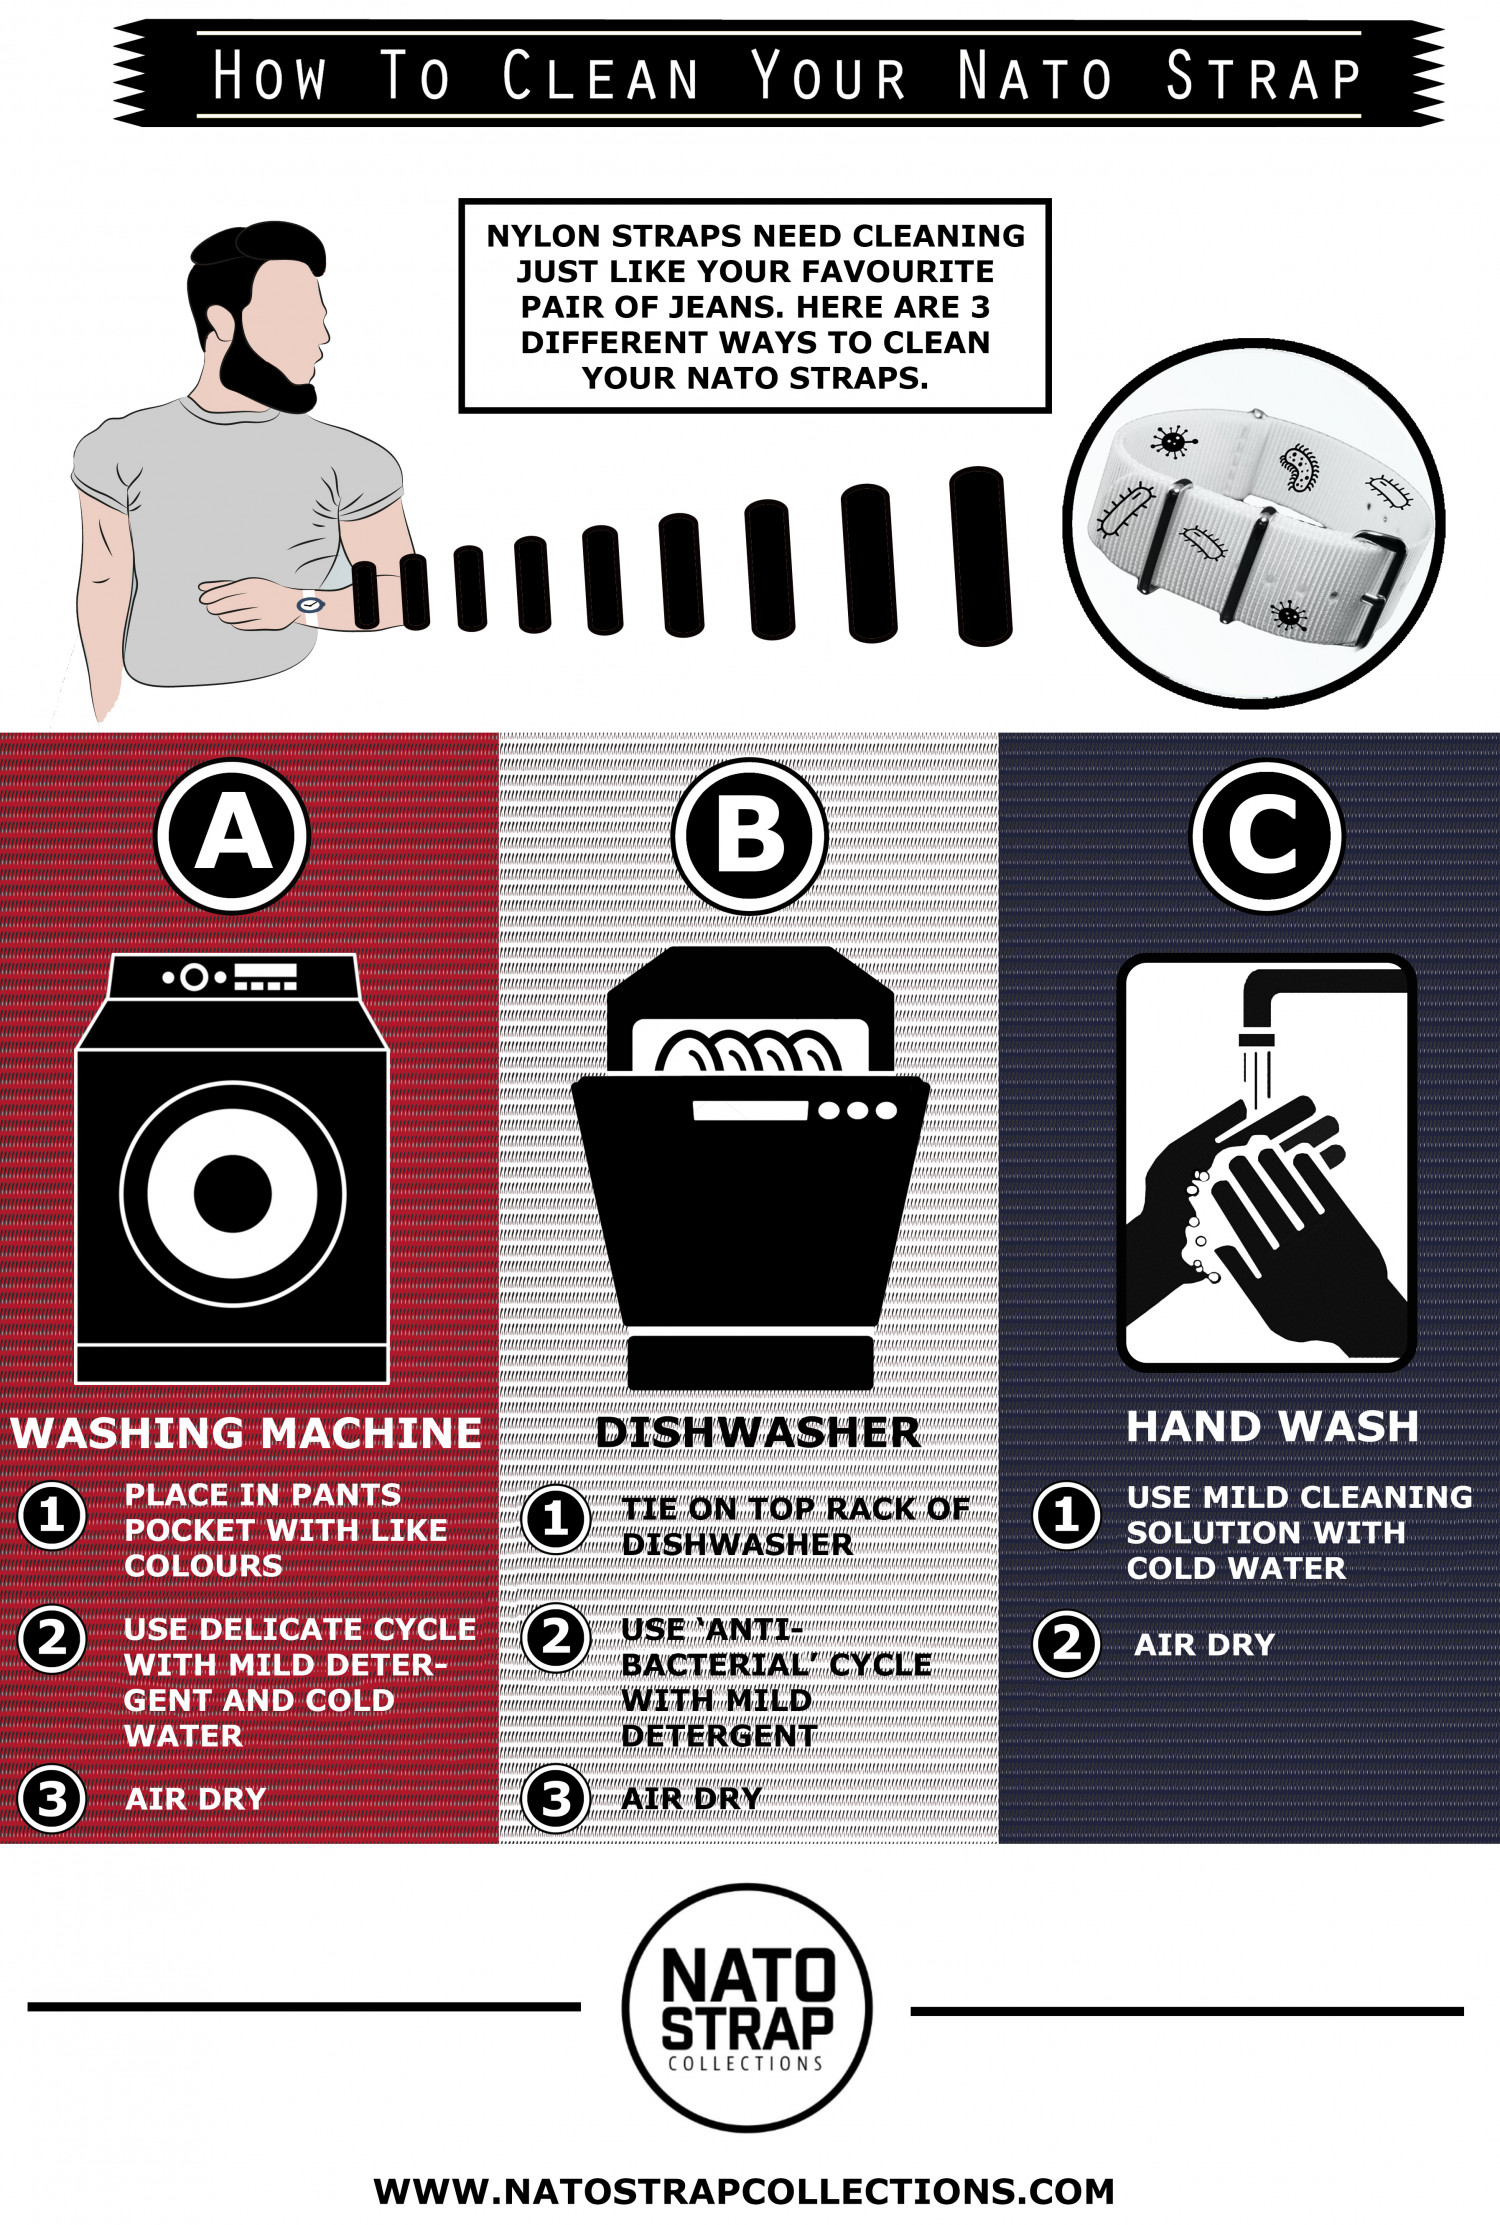 How To Clean Your Nato Strap Infographic